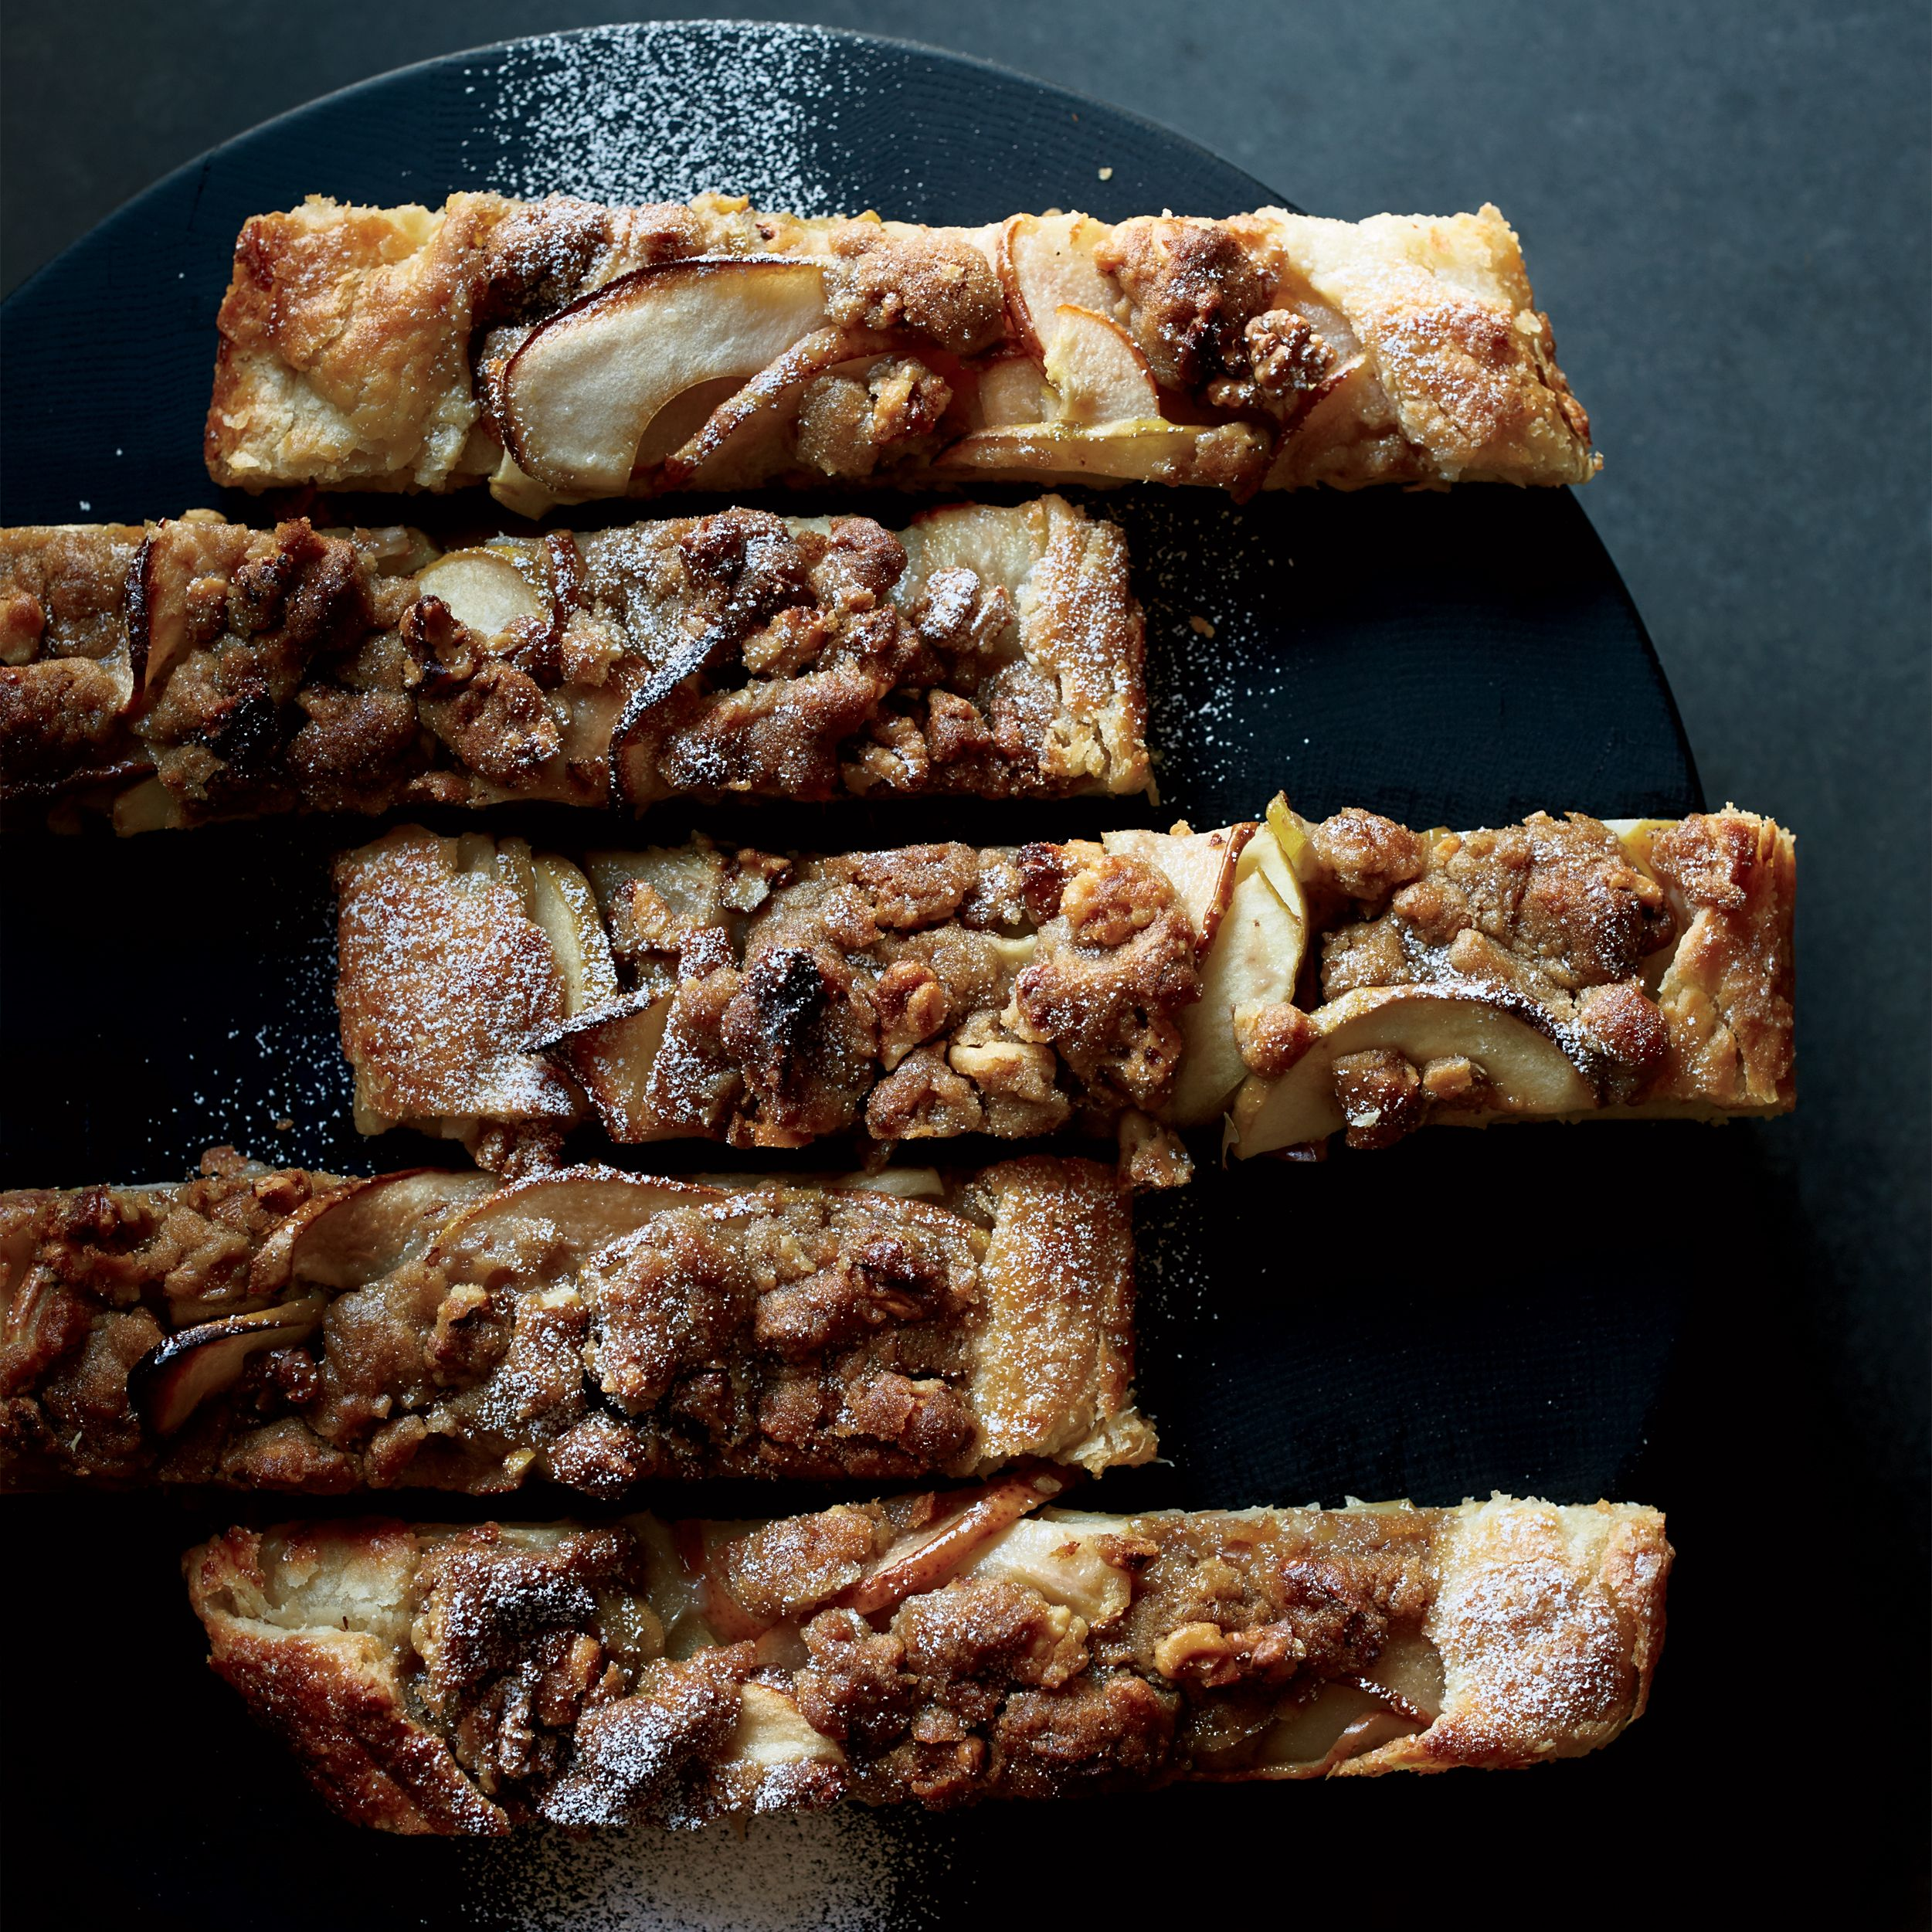 Apple and pear galette with walnut streusel recipe pear apple and pear galette with walnut streusel wine recipessalad recipesyummy recipesdessert forumfinder Choice Image